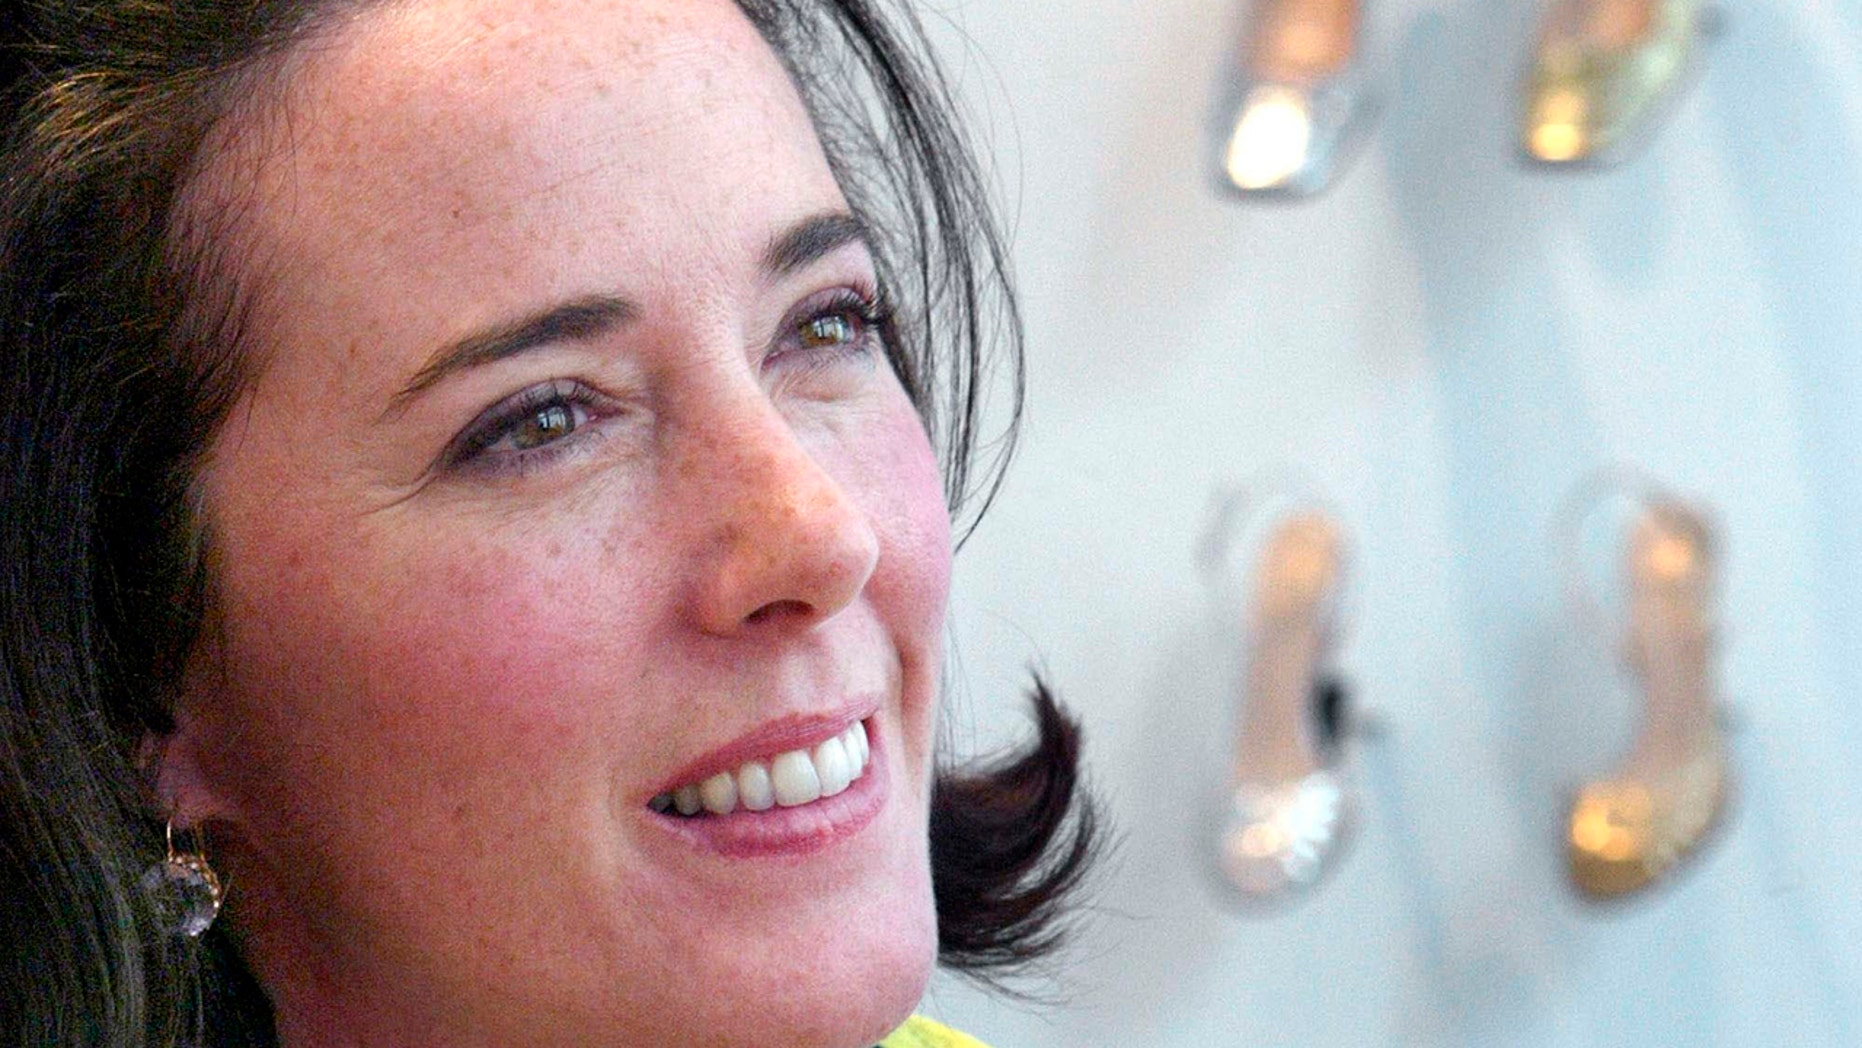 Kate Spade reportedly left a suicide note, which contained a message to her 13-year-old daughter.